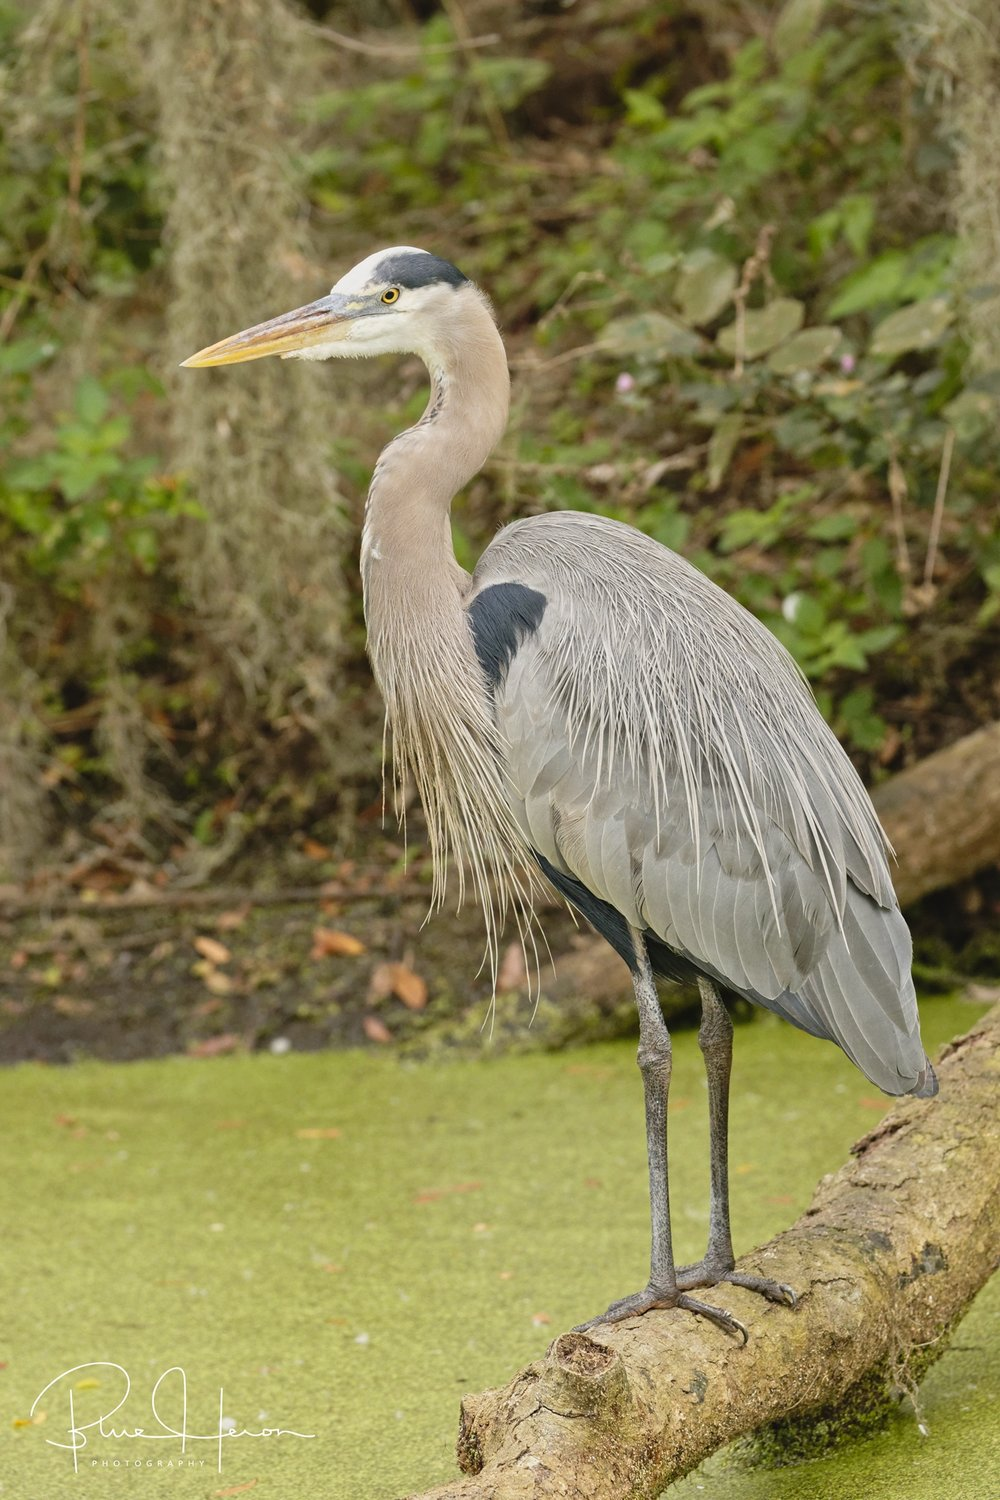 We also encountered the handsome Great Blue Heron on the walk